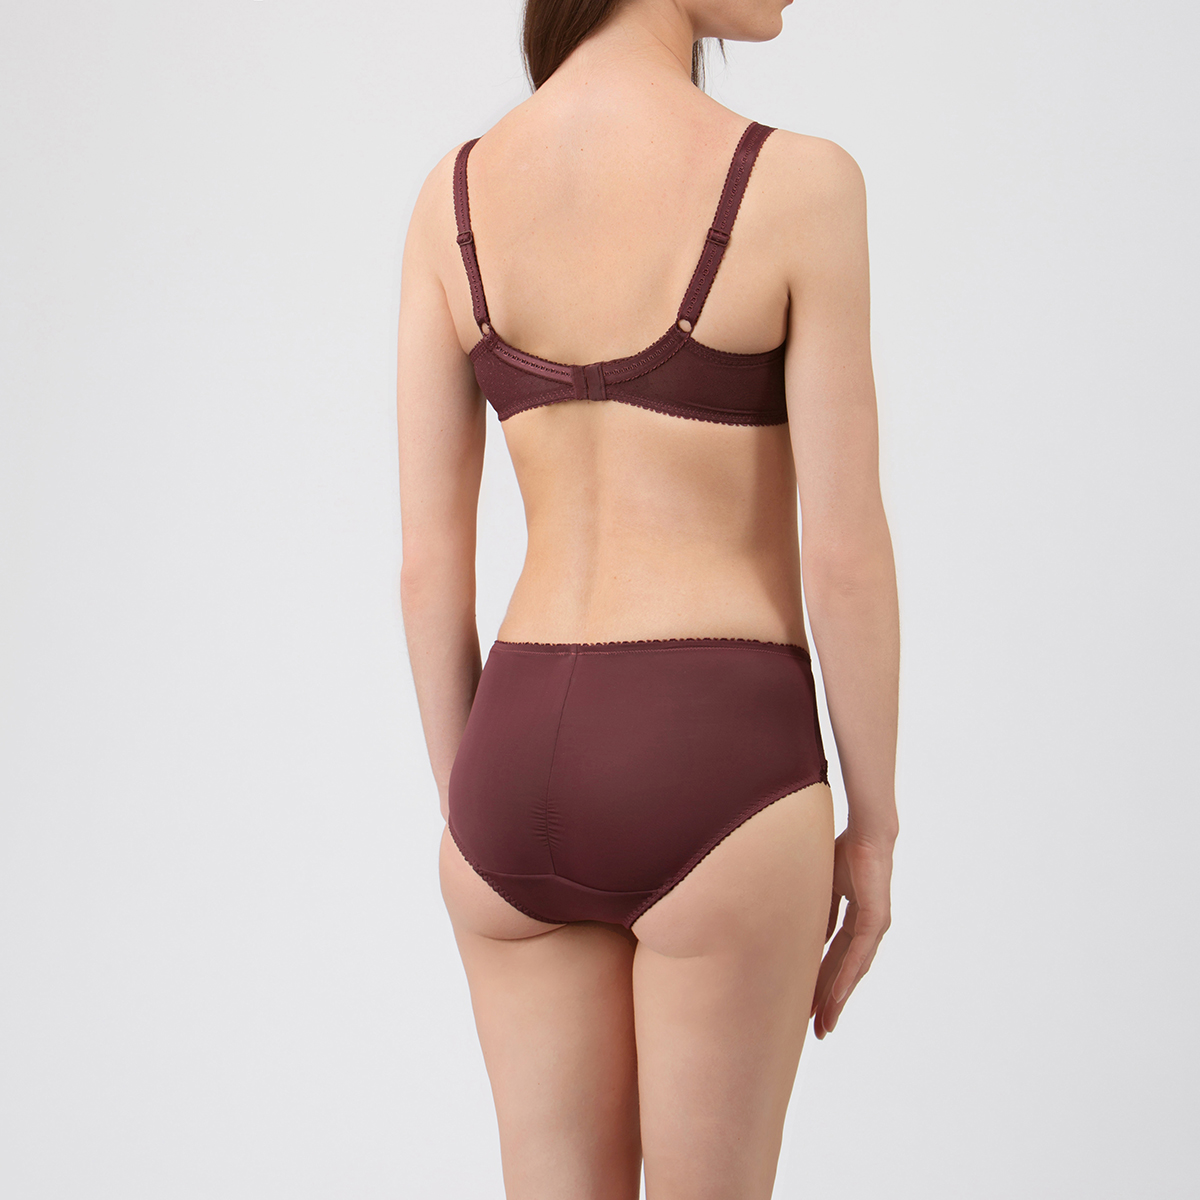 Midi Brief in Brown – Classic Lace Support-PLAYTEX